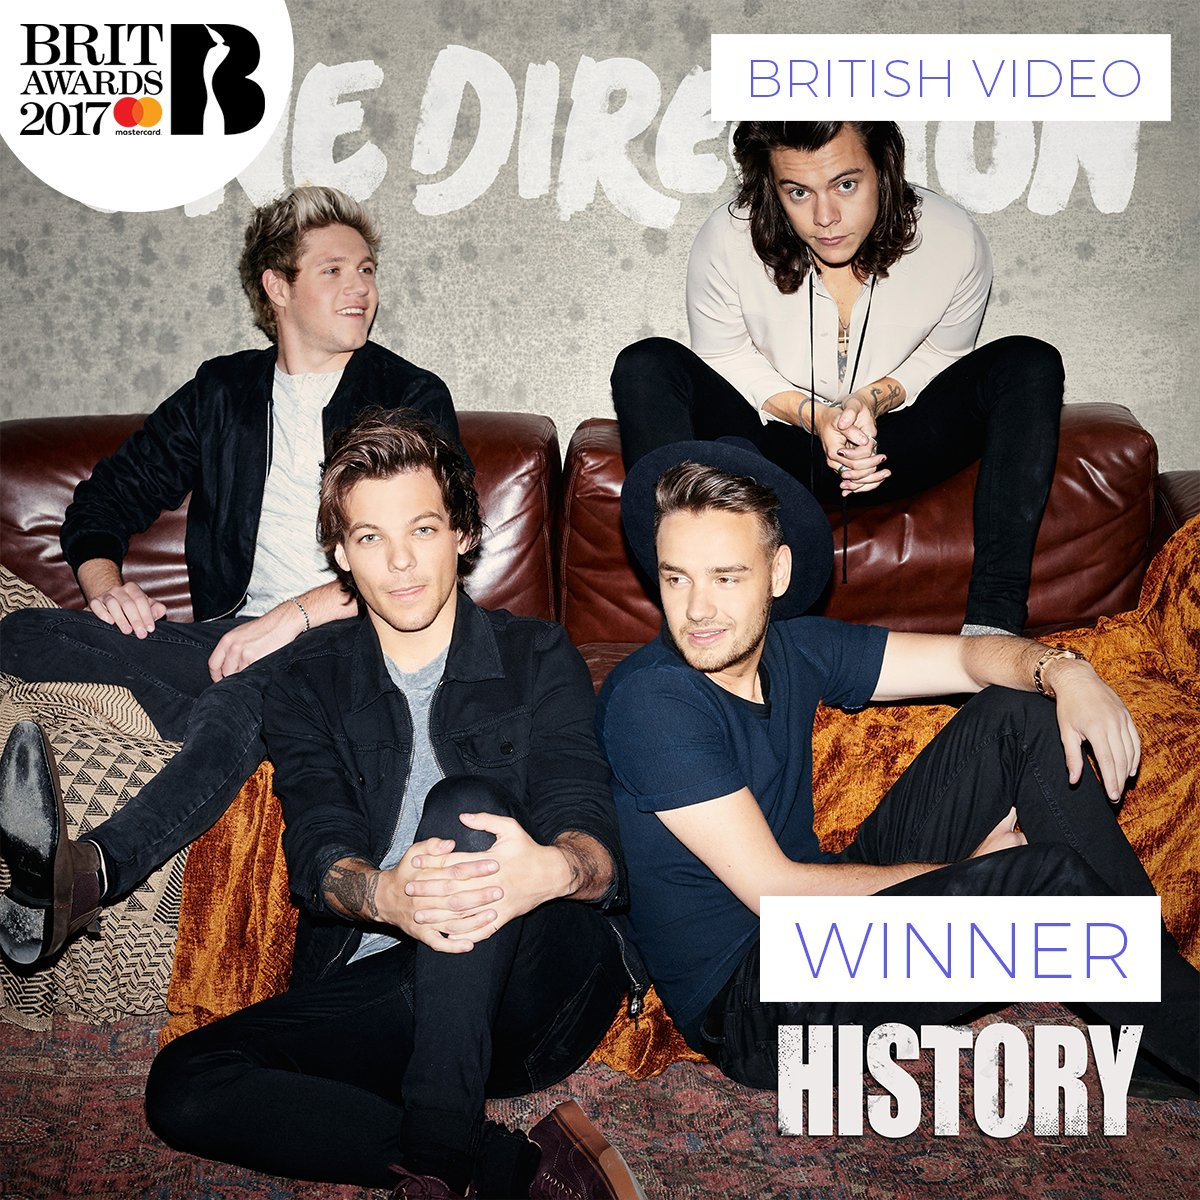 RT @BRITs: The winner of British Video at The #BRITs 2017 as voted for by you is @onedirection!! 🎉 https://t.co/y02G5t6nqZ